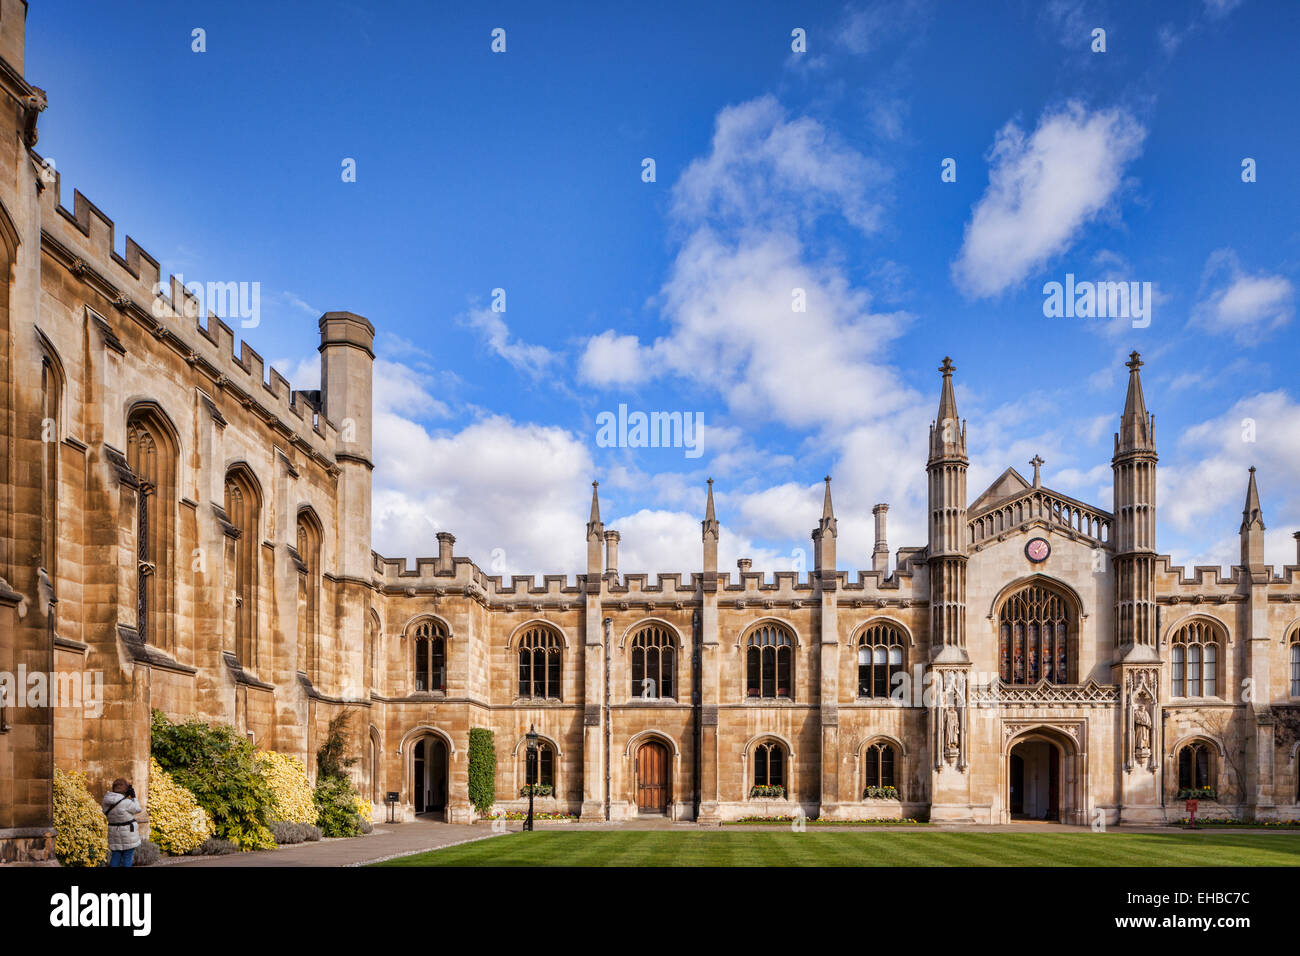 New Court, Corpus Christi College, Cambridge. - Stock Image